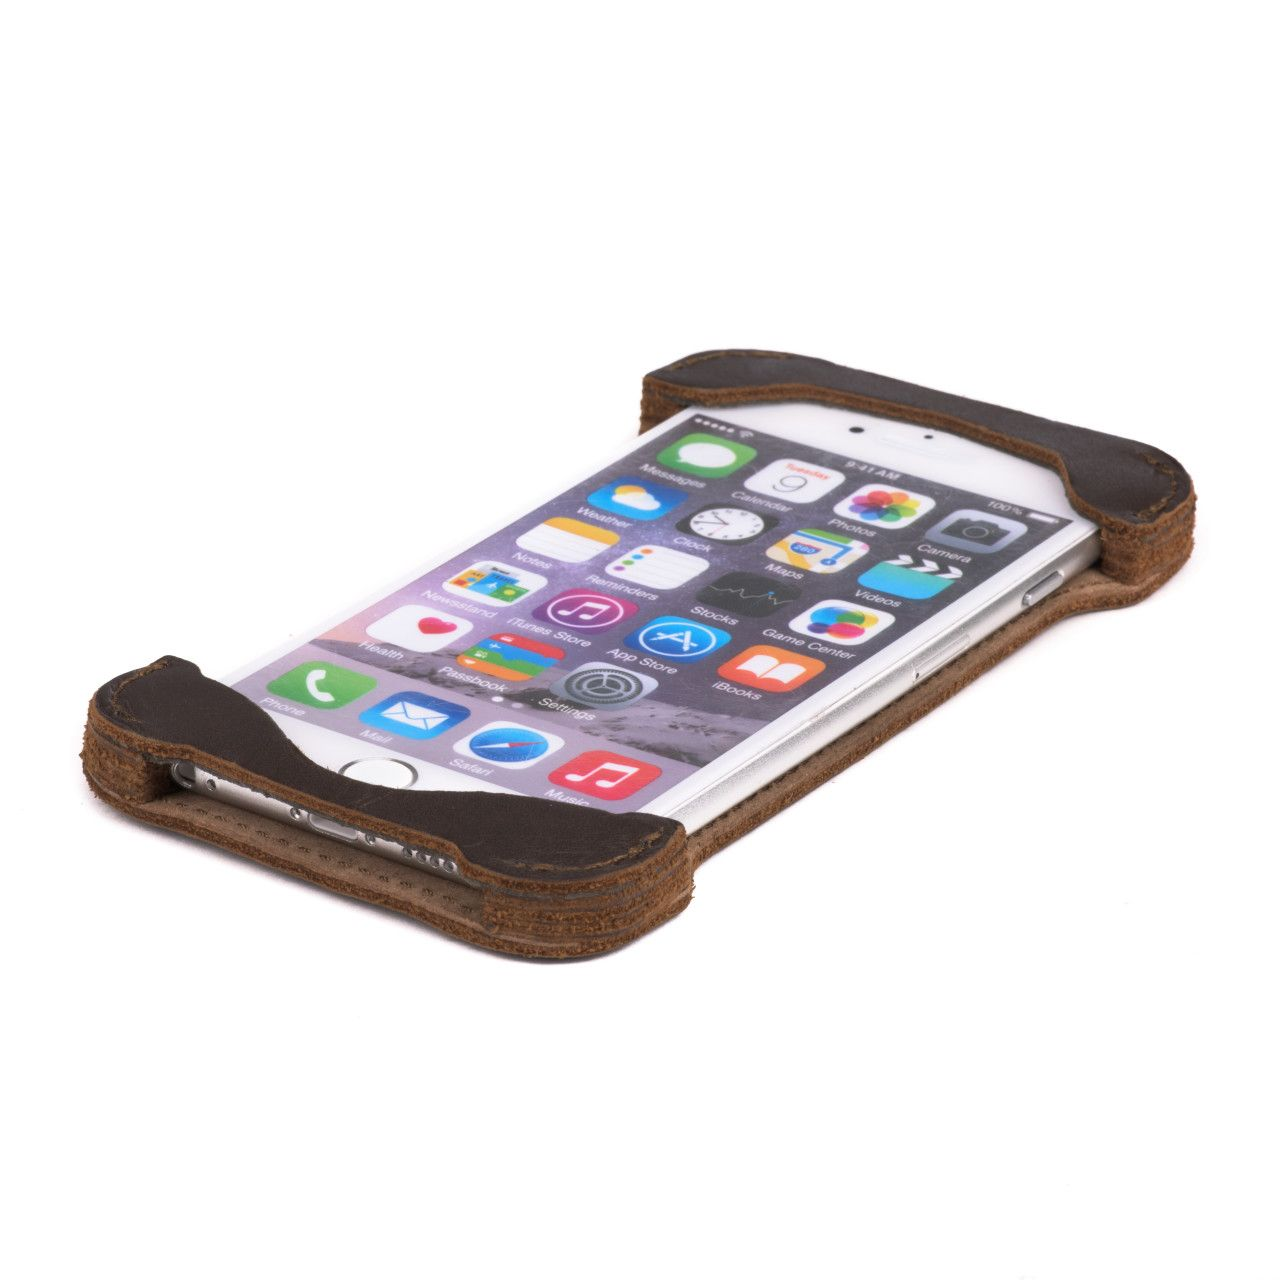 Iphone in iphone 6 leather case large in dark coffee brown leather